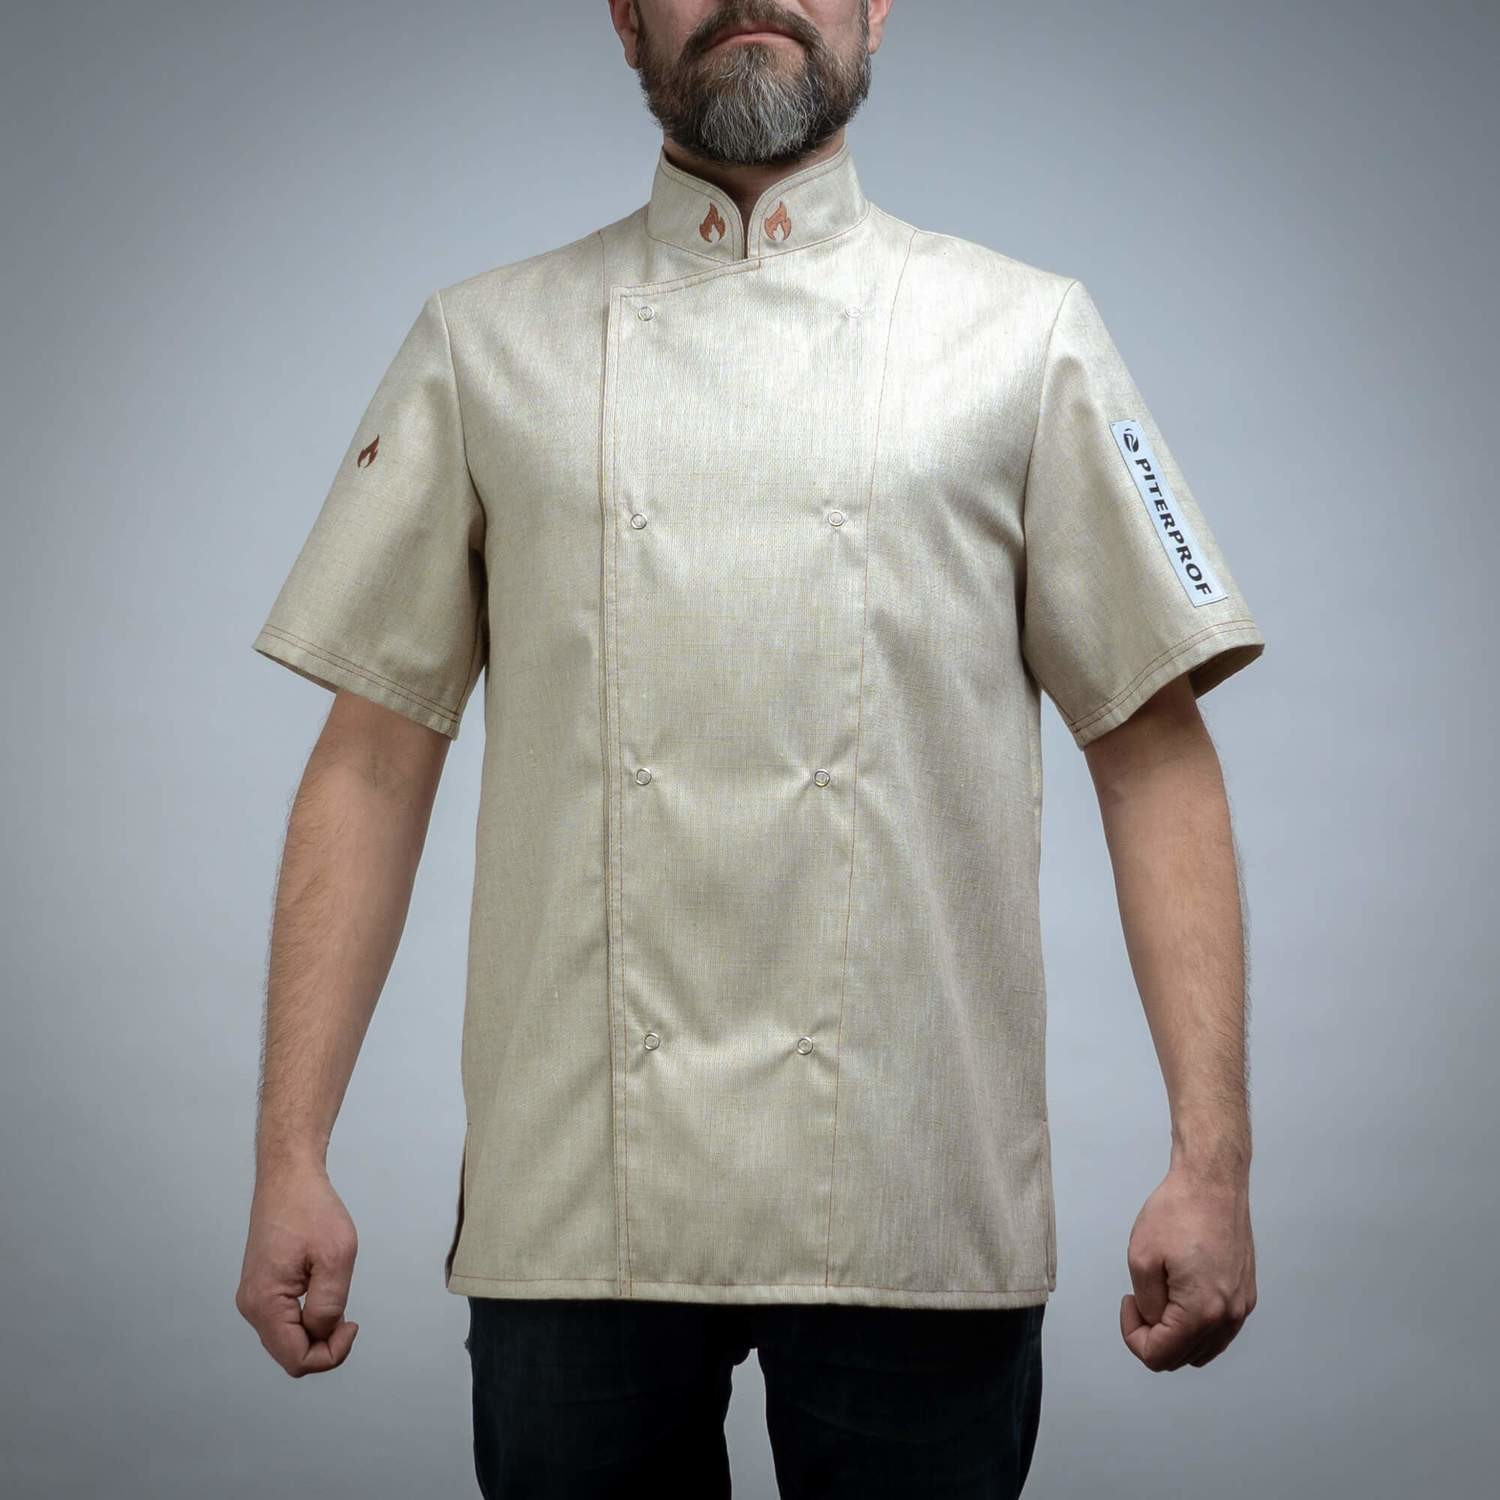 201LS - CHEF'S JACKET